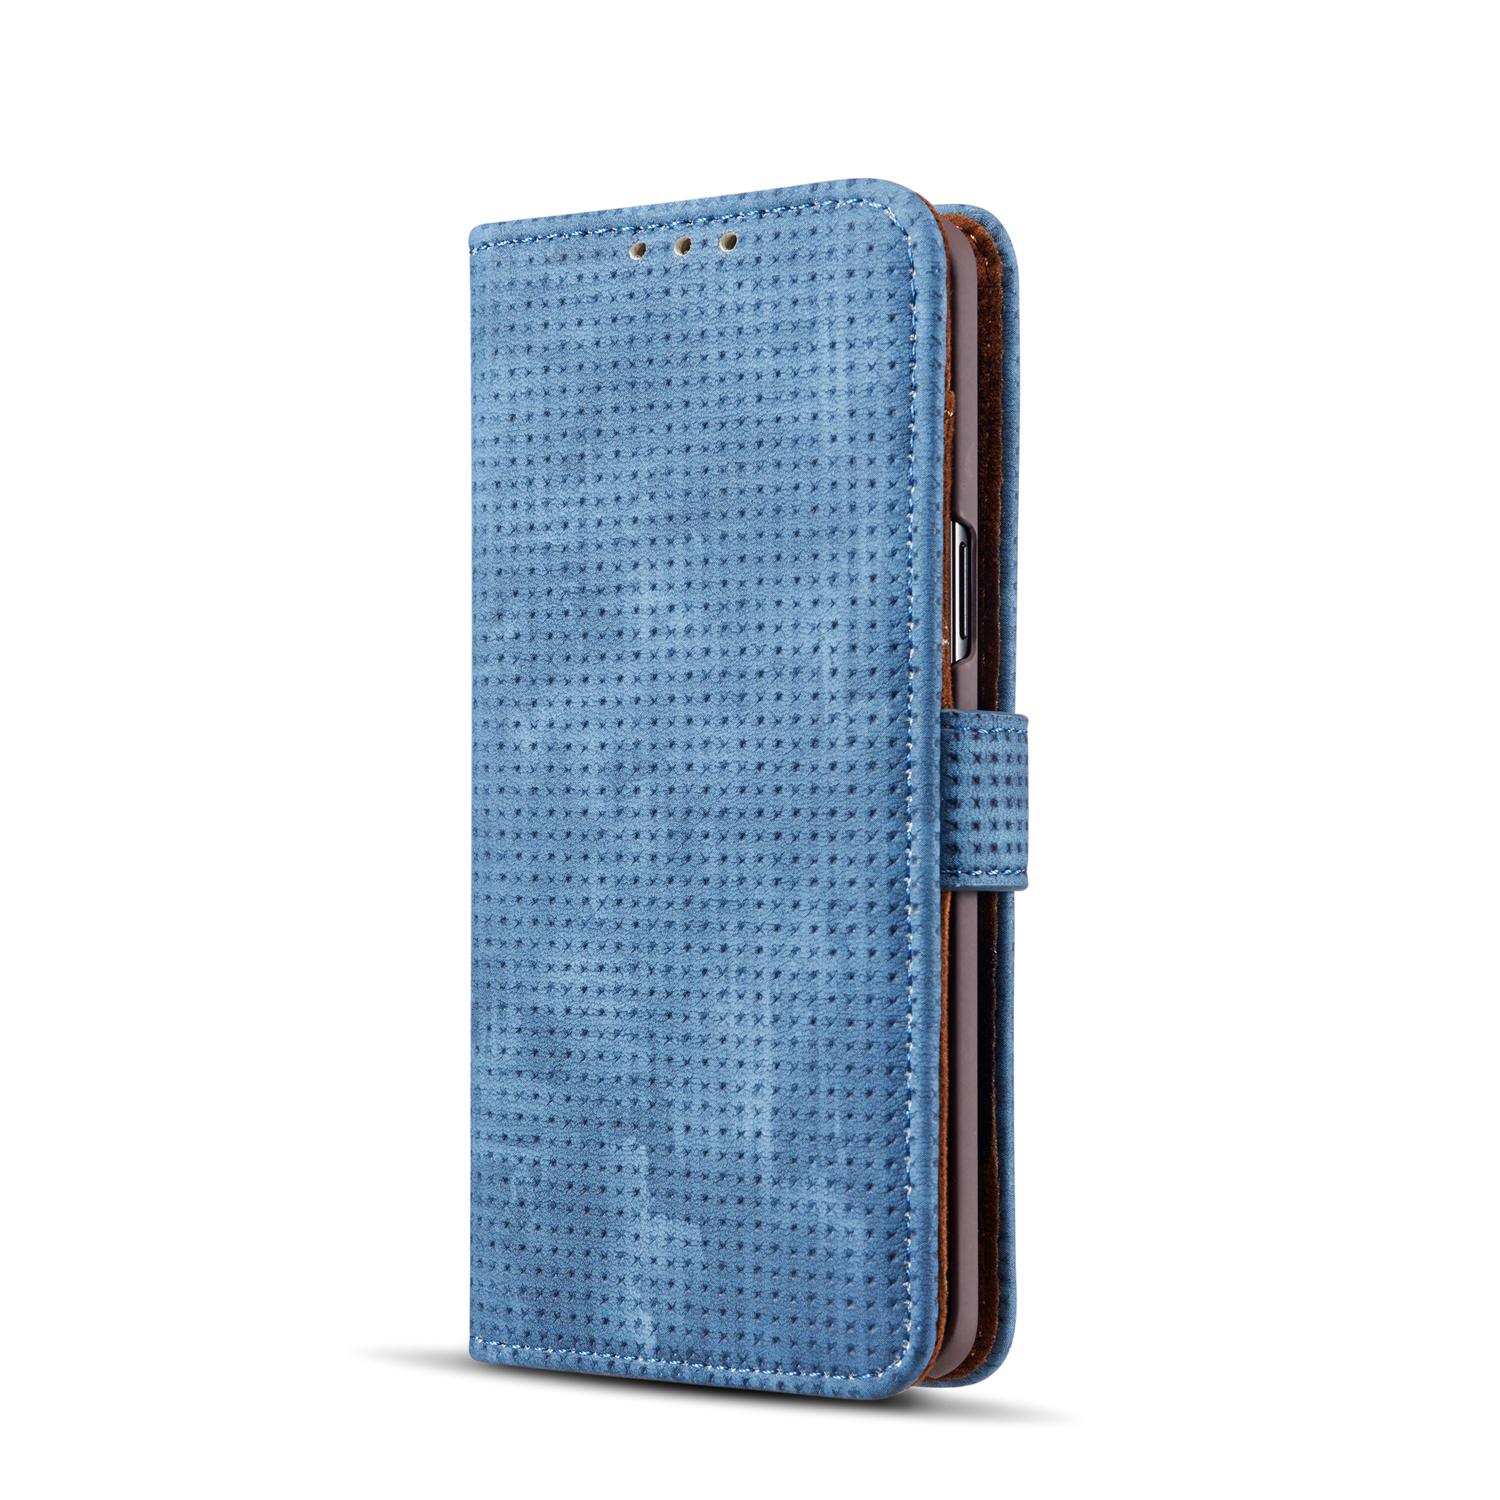 Mesh Heat Dissipation Wallet Kickstand Protective Case For Samsung Galaxy S9/S9 Plus